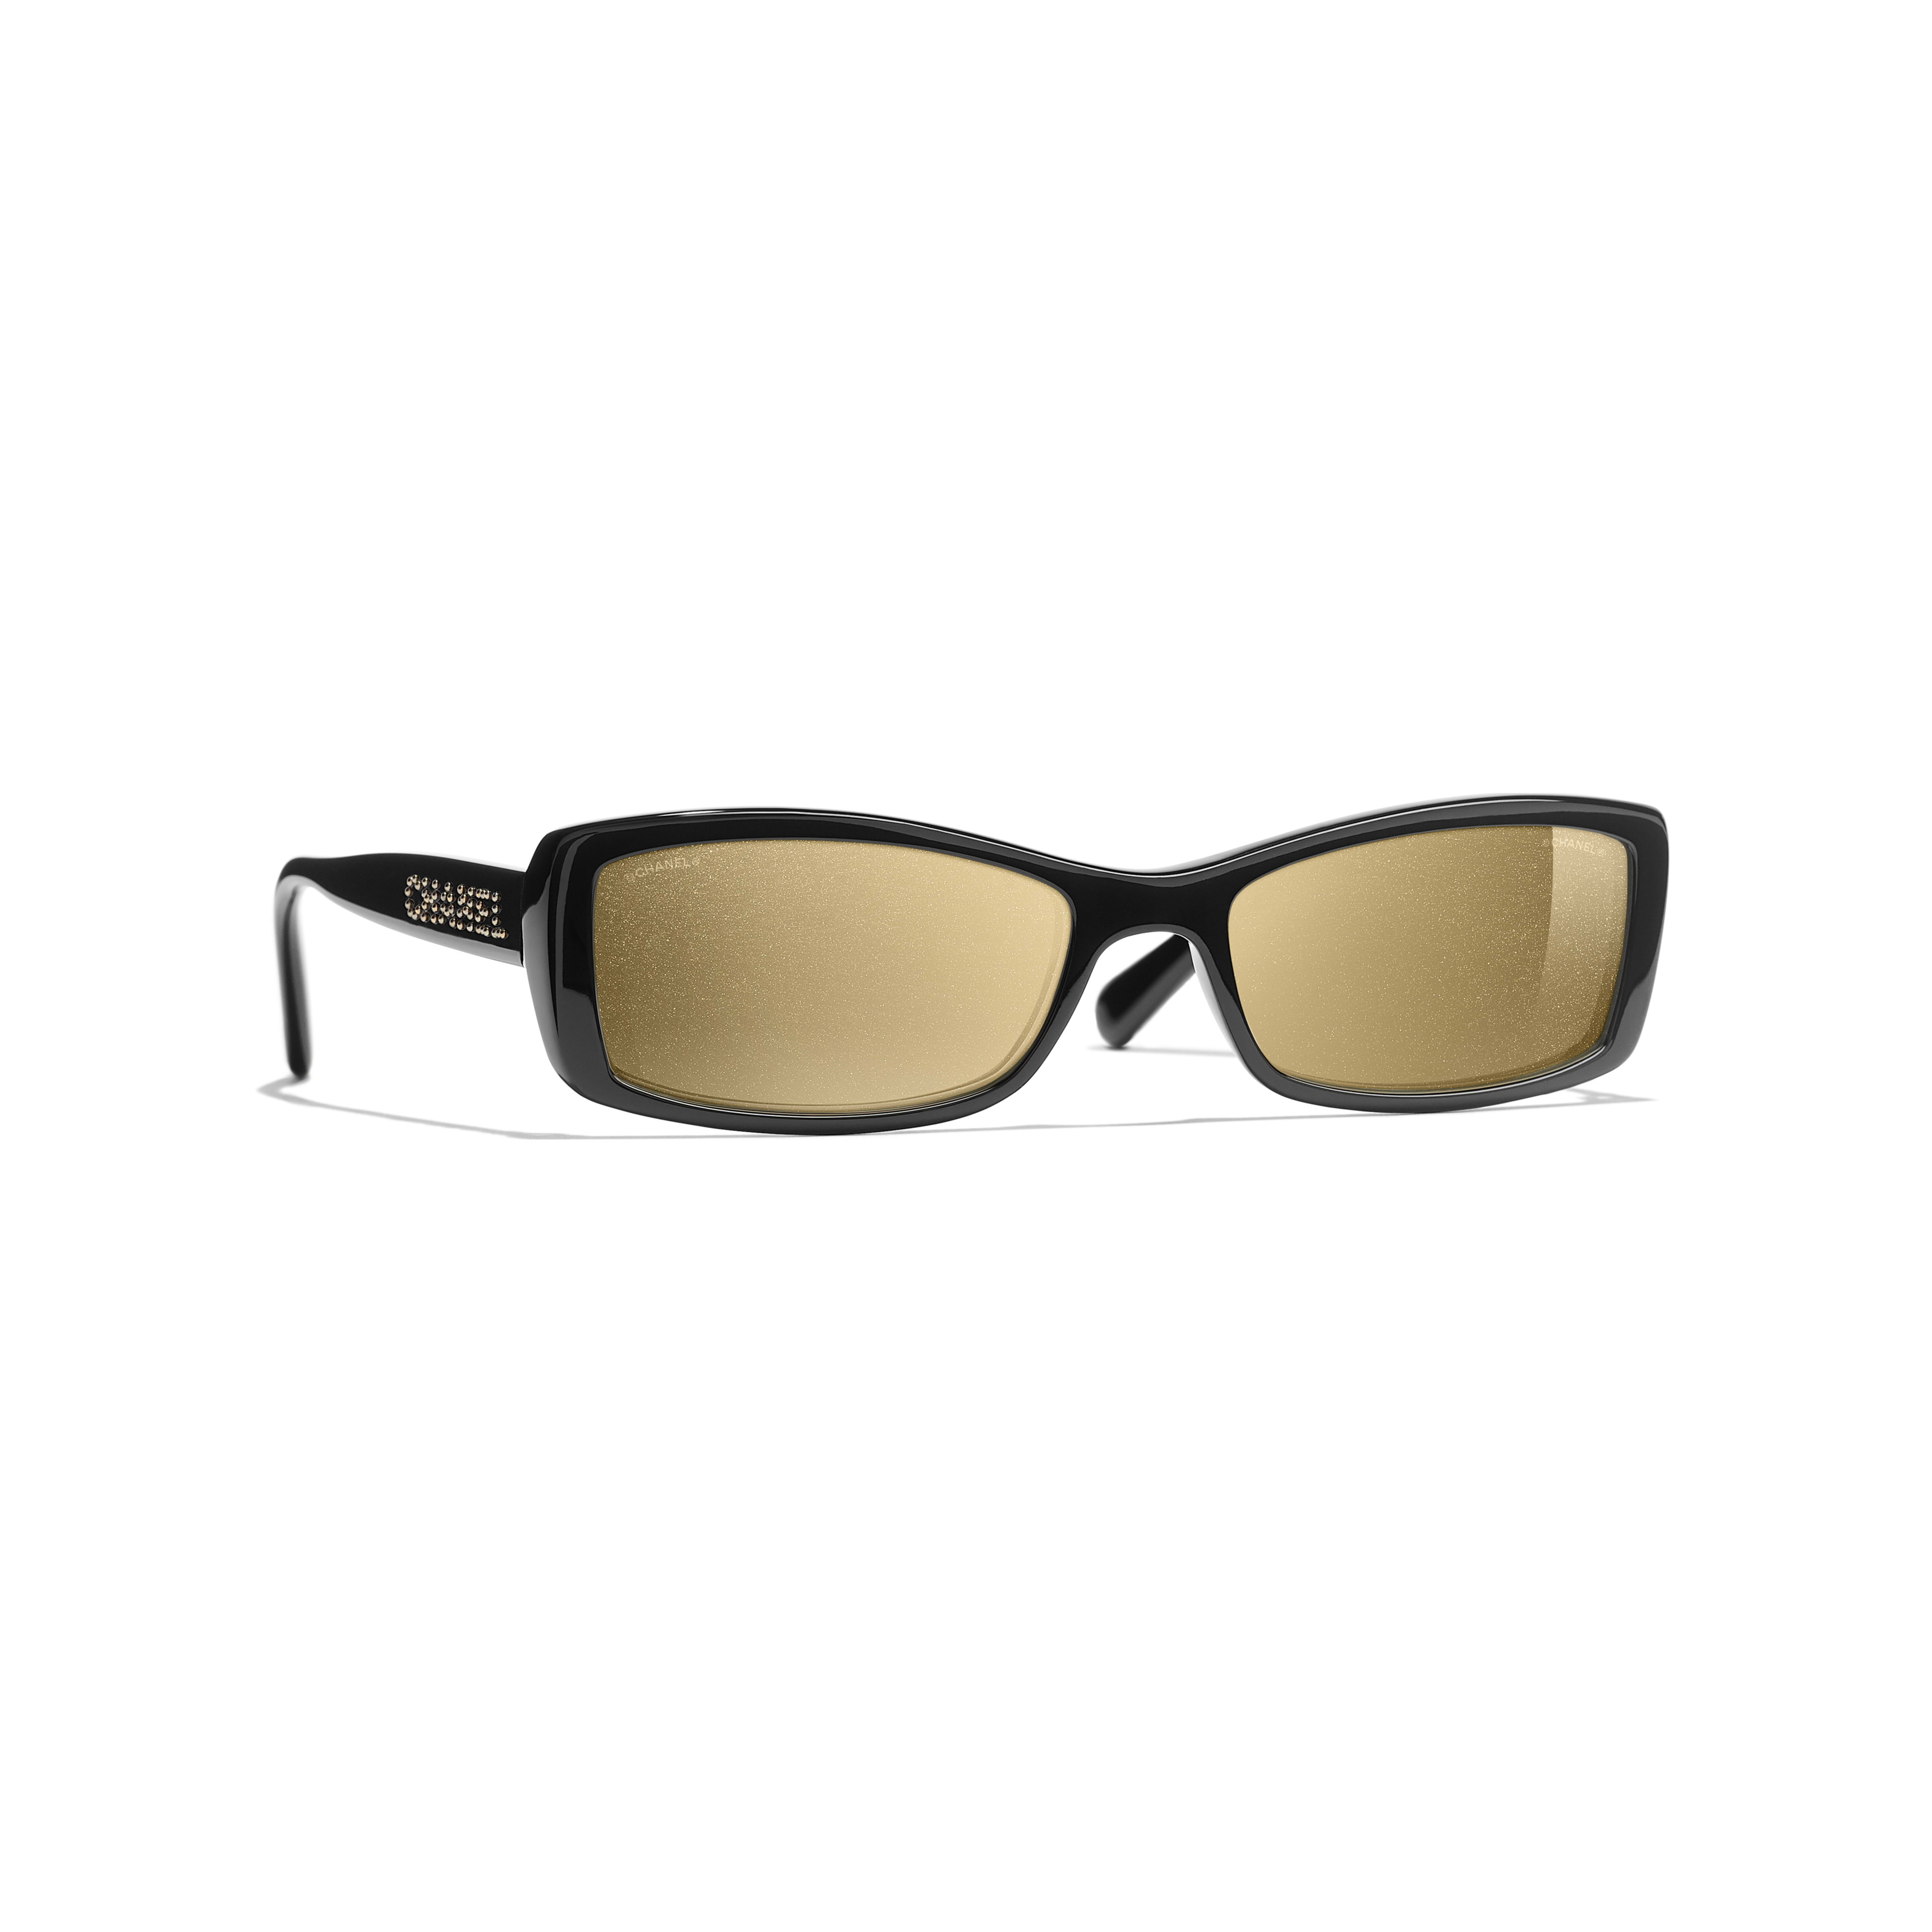 Rectangle Sunglasses - Black - Acetate - Default view - see standard sized version